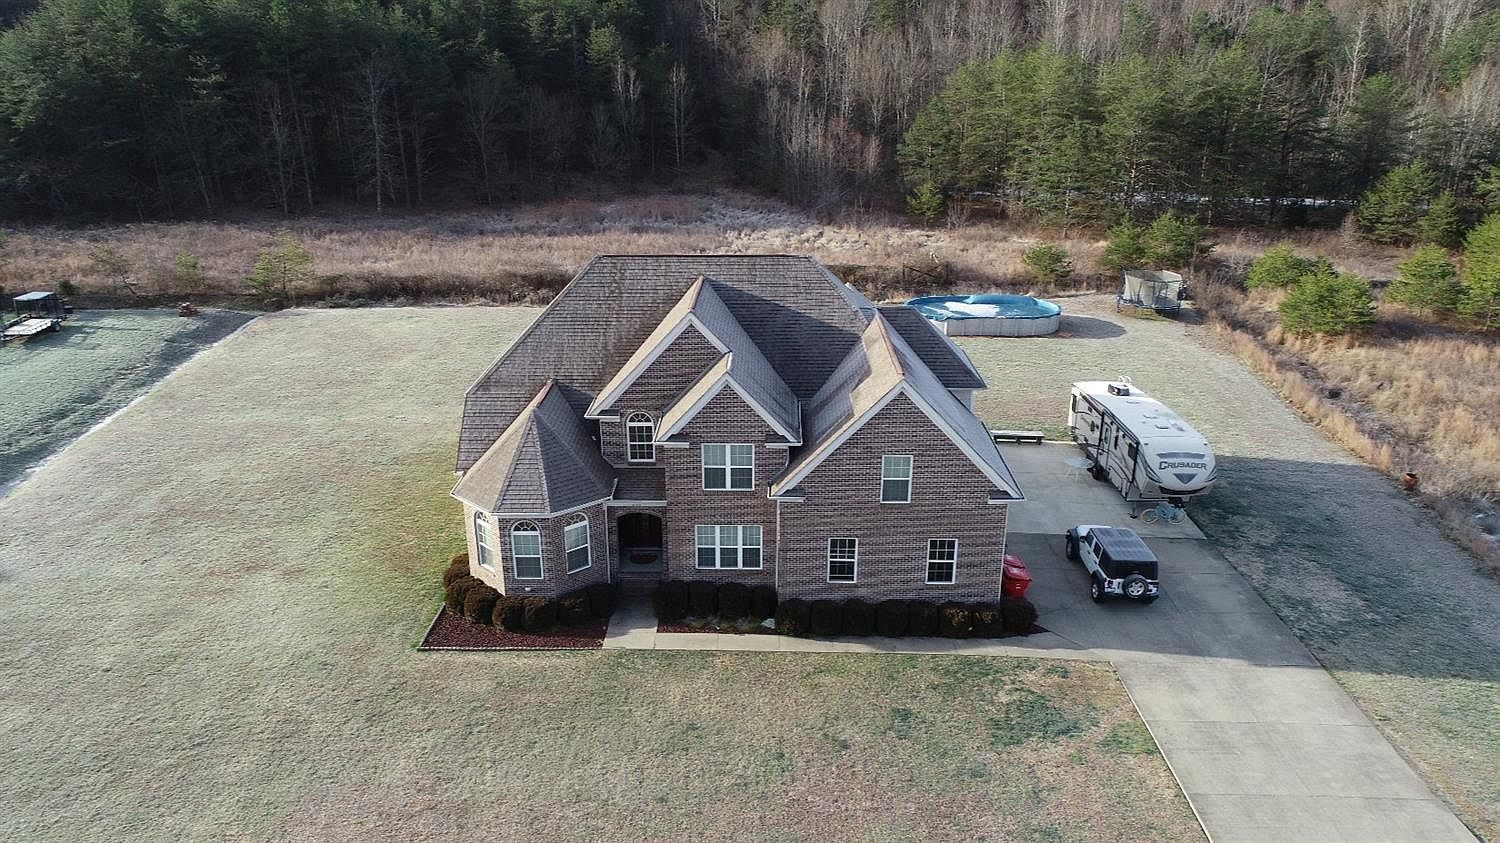 601 Fawn Valley Rd Corbin Ky 40701 Mls 20001545 Zillow